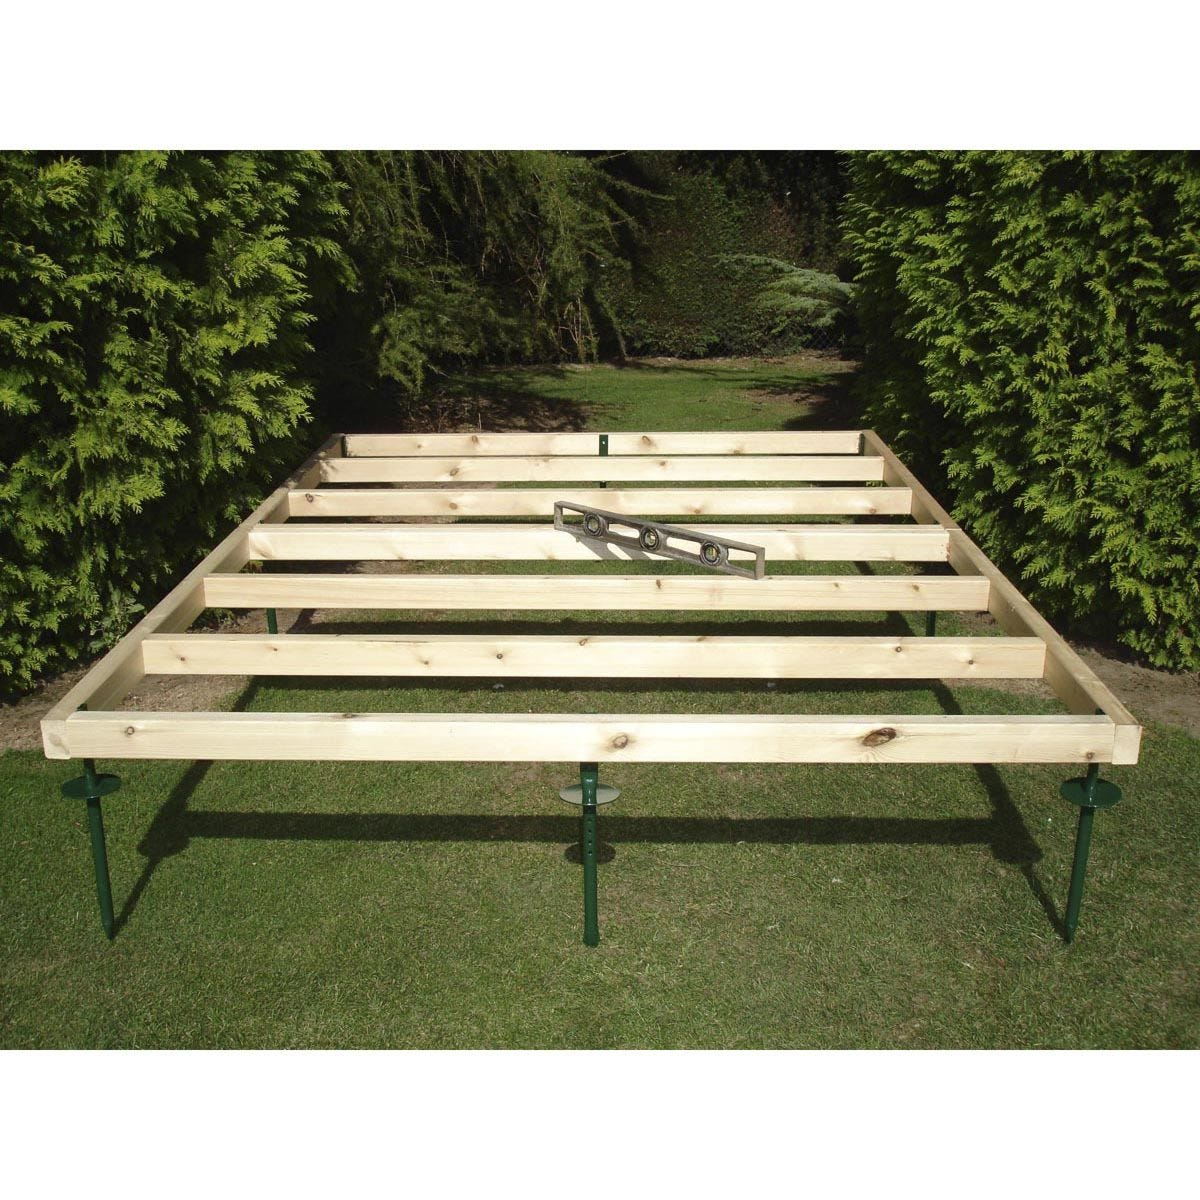 Shire Adjustable Shed Base - 6ft x 4ft